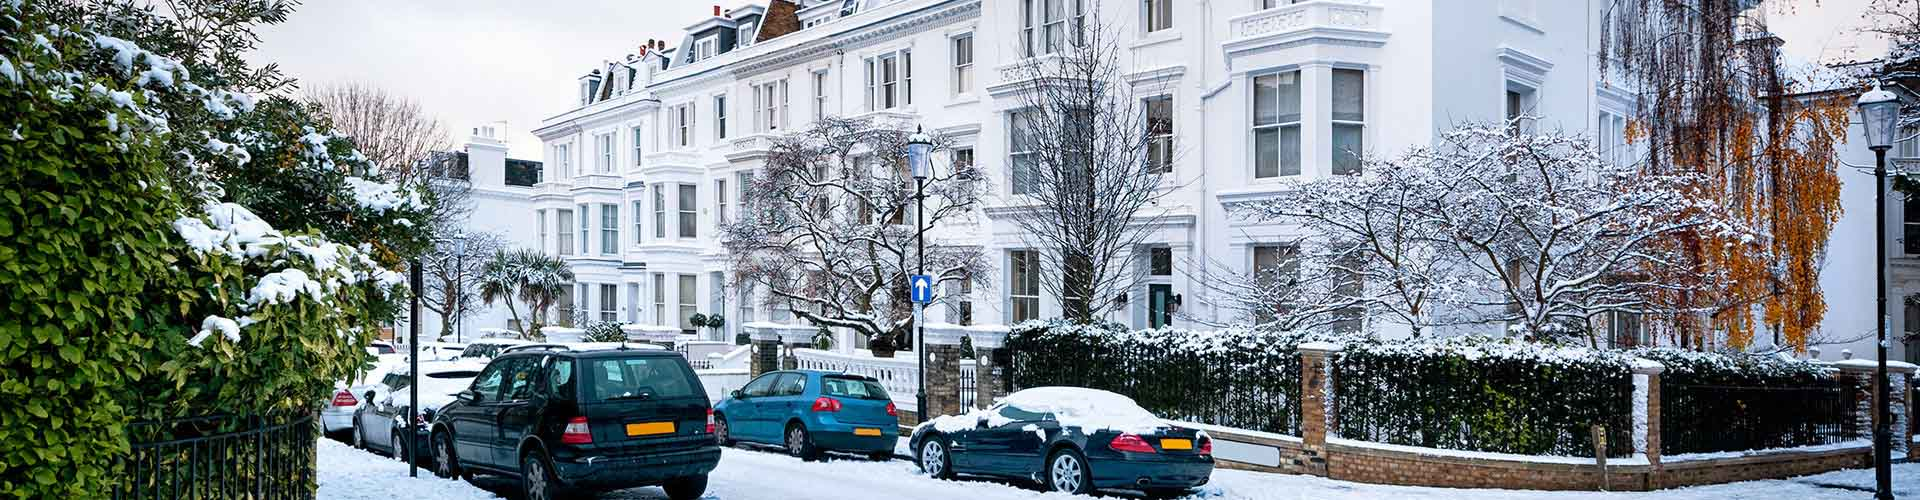 London – Hotels in Borough of Kensington and Chelsea. Maps of London, Photos and Reviews for each Hotel in London.